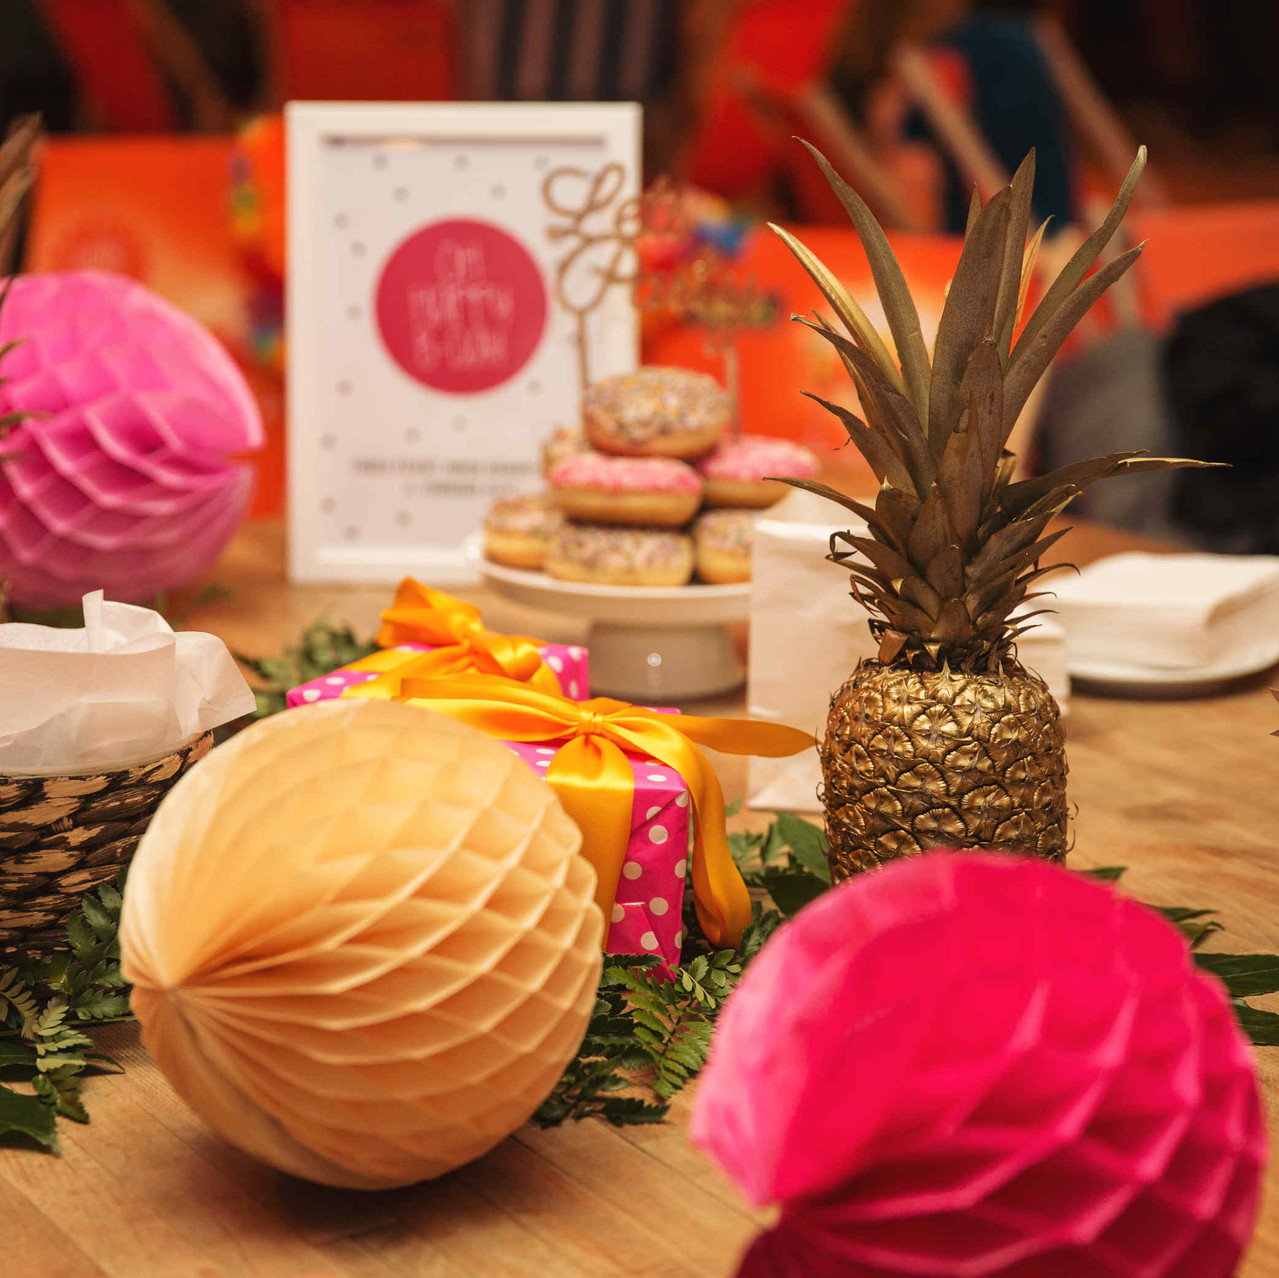 Flamingo Party, Pink Party, Birthday Party, Geburtstagsparty, Partydeko, Geburtstagsdeko, Dekokit, Dekoideen, Honeycombs, Ananas, Hawaii Party